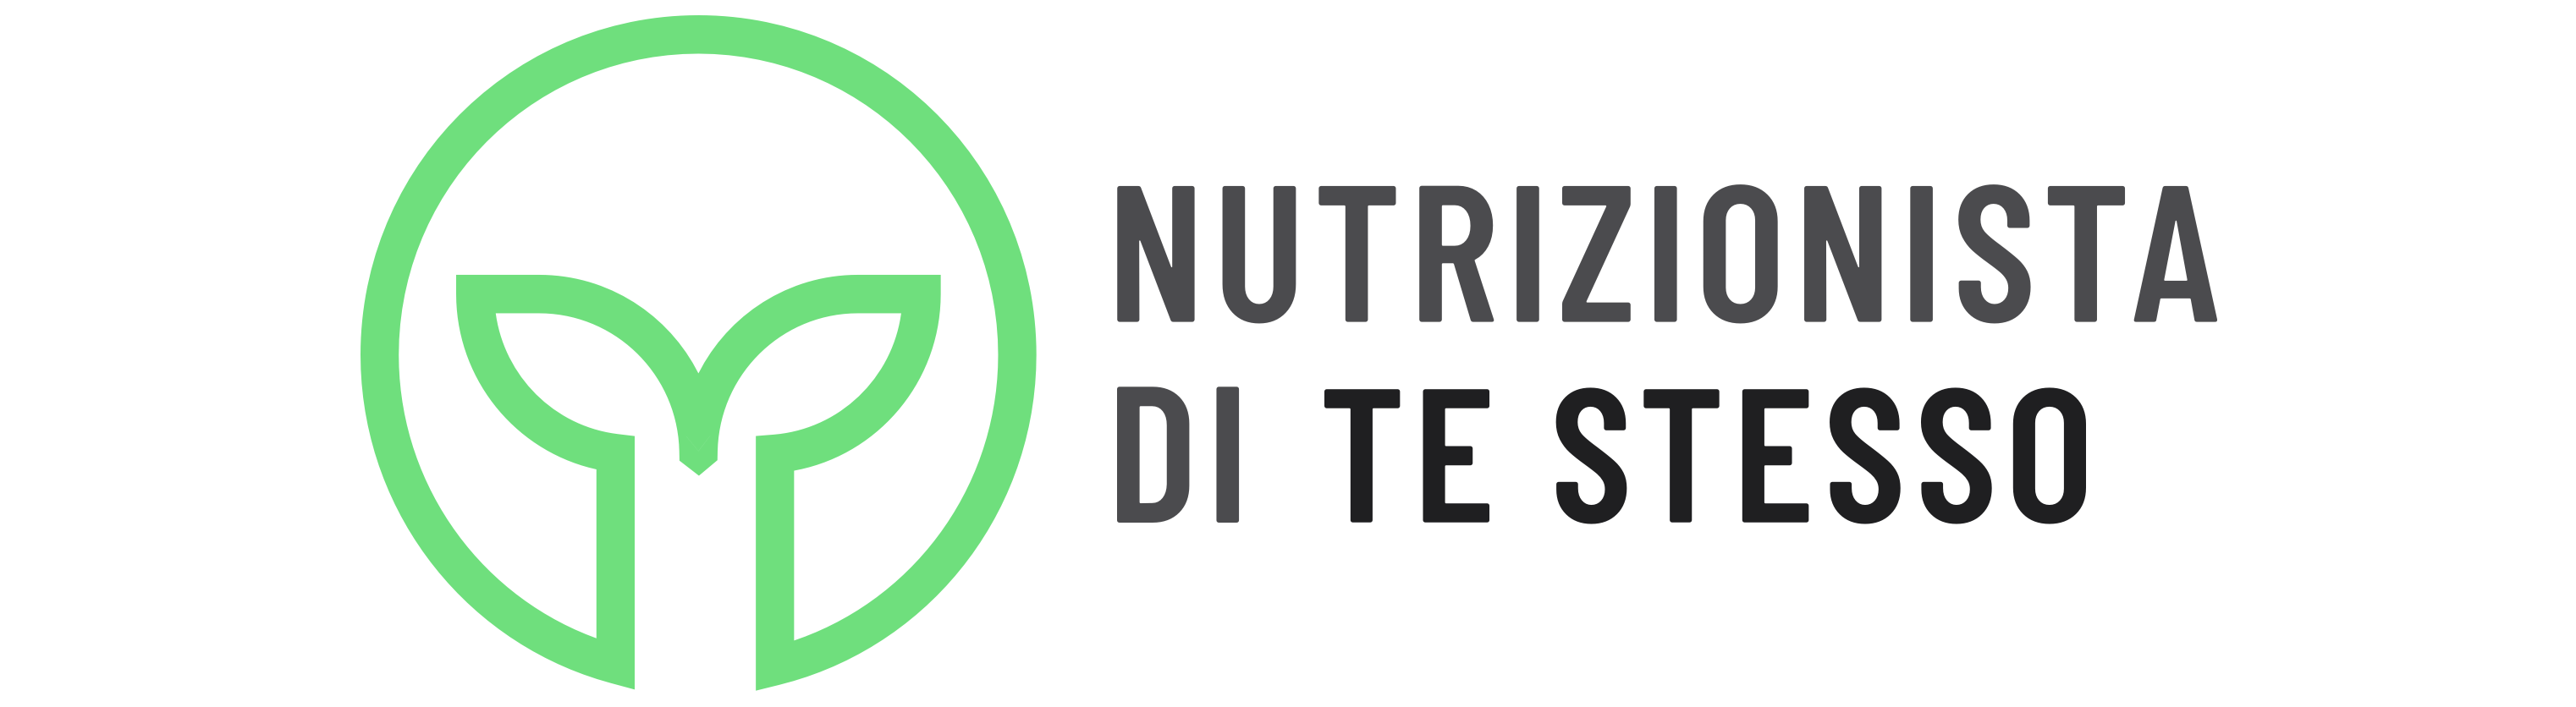 cropped-Logo-Verde-no-payoff@2x-4.png